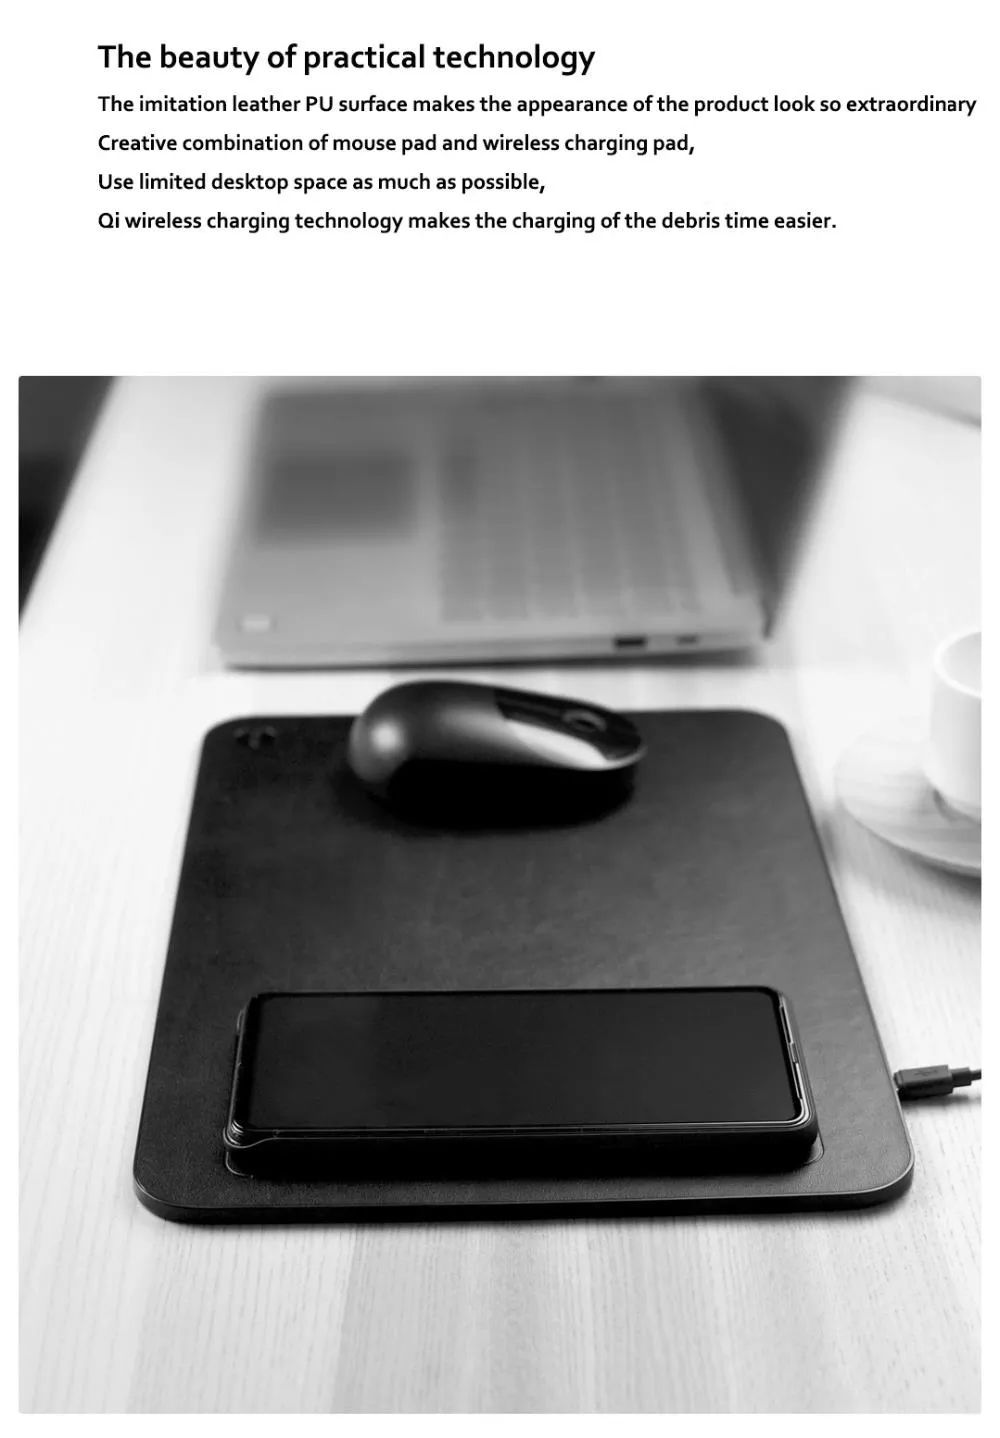 Xiaomi Miiiw Qi Wireless Charger Pu Leather Mouse Pad (6)